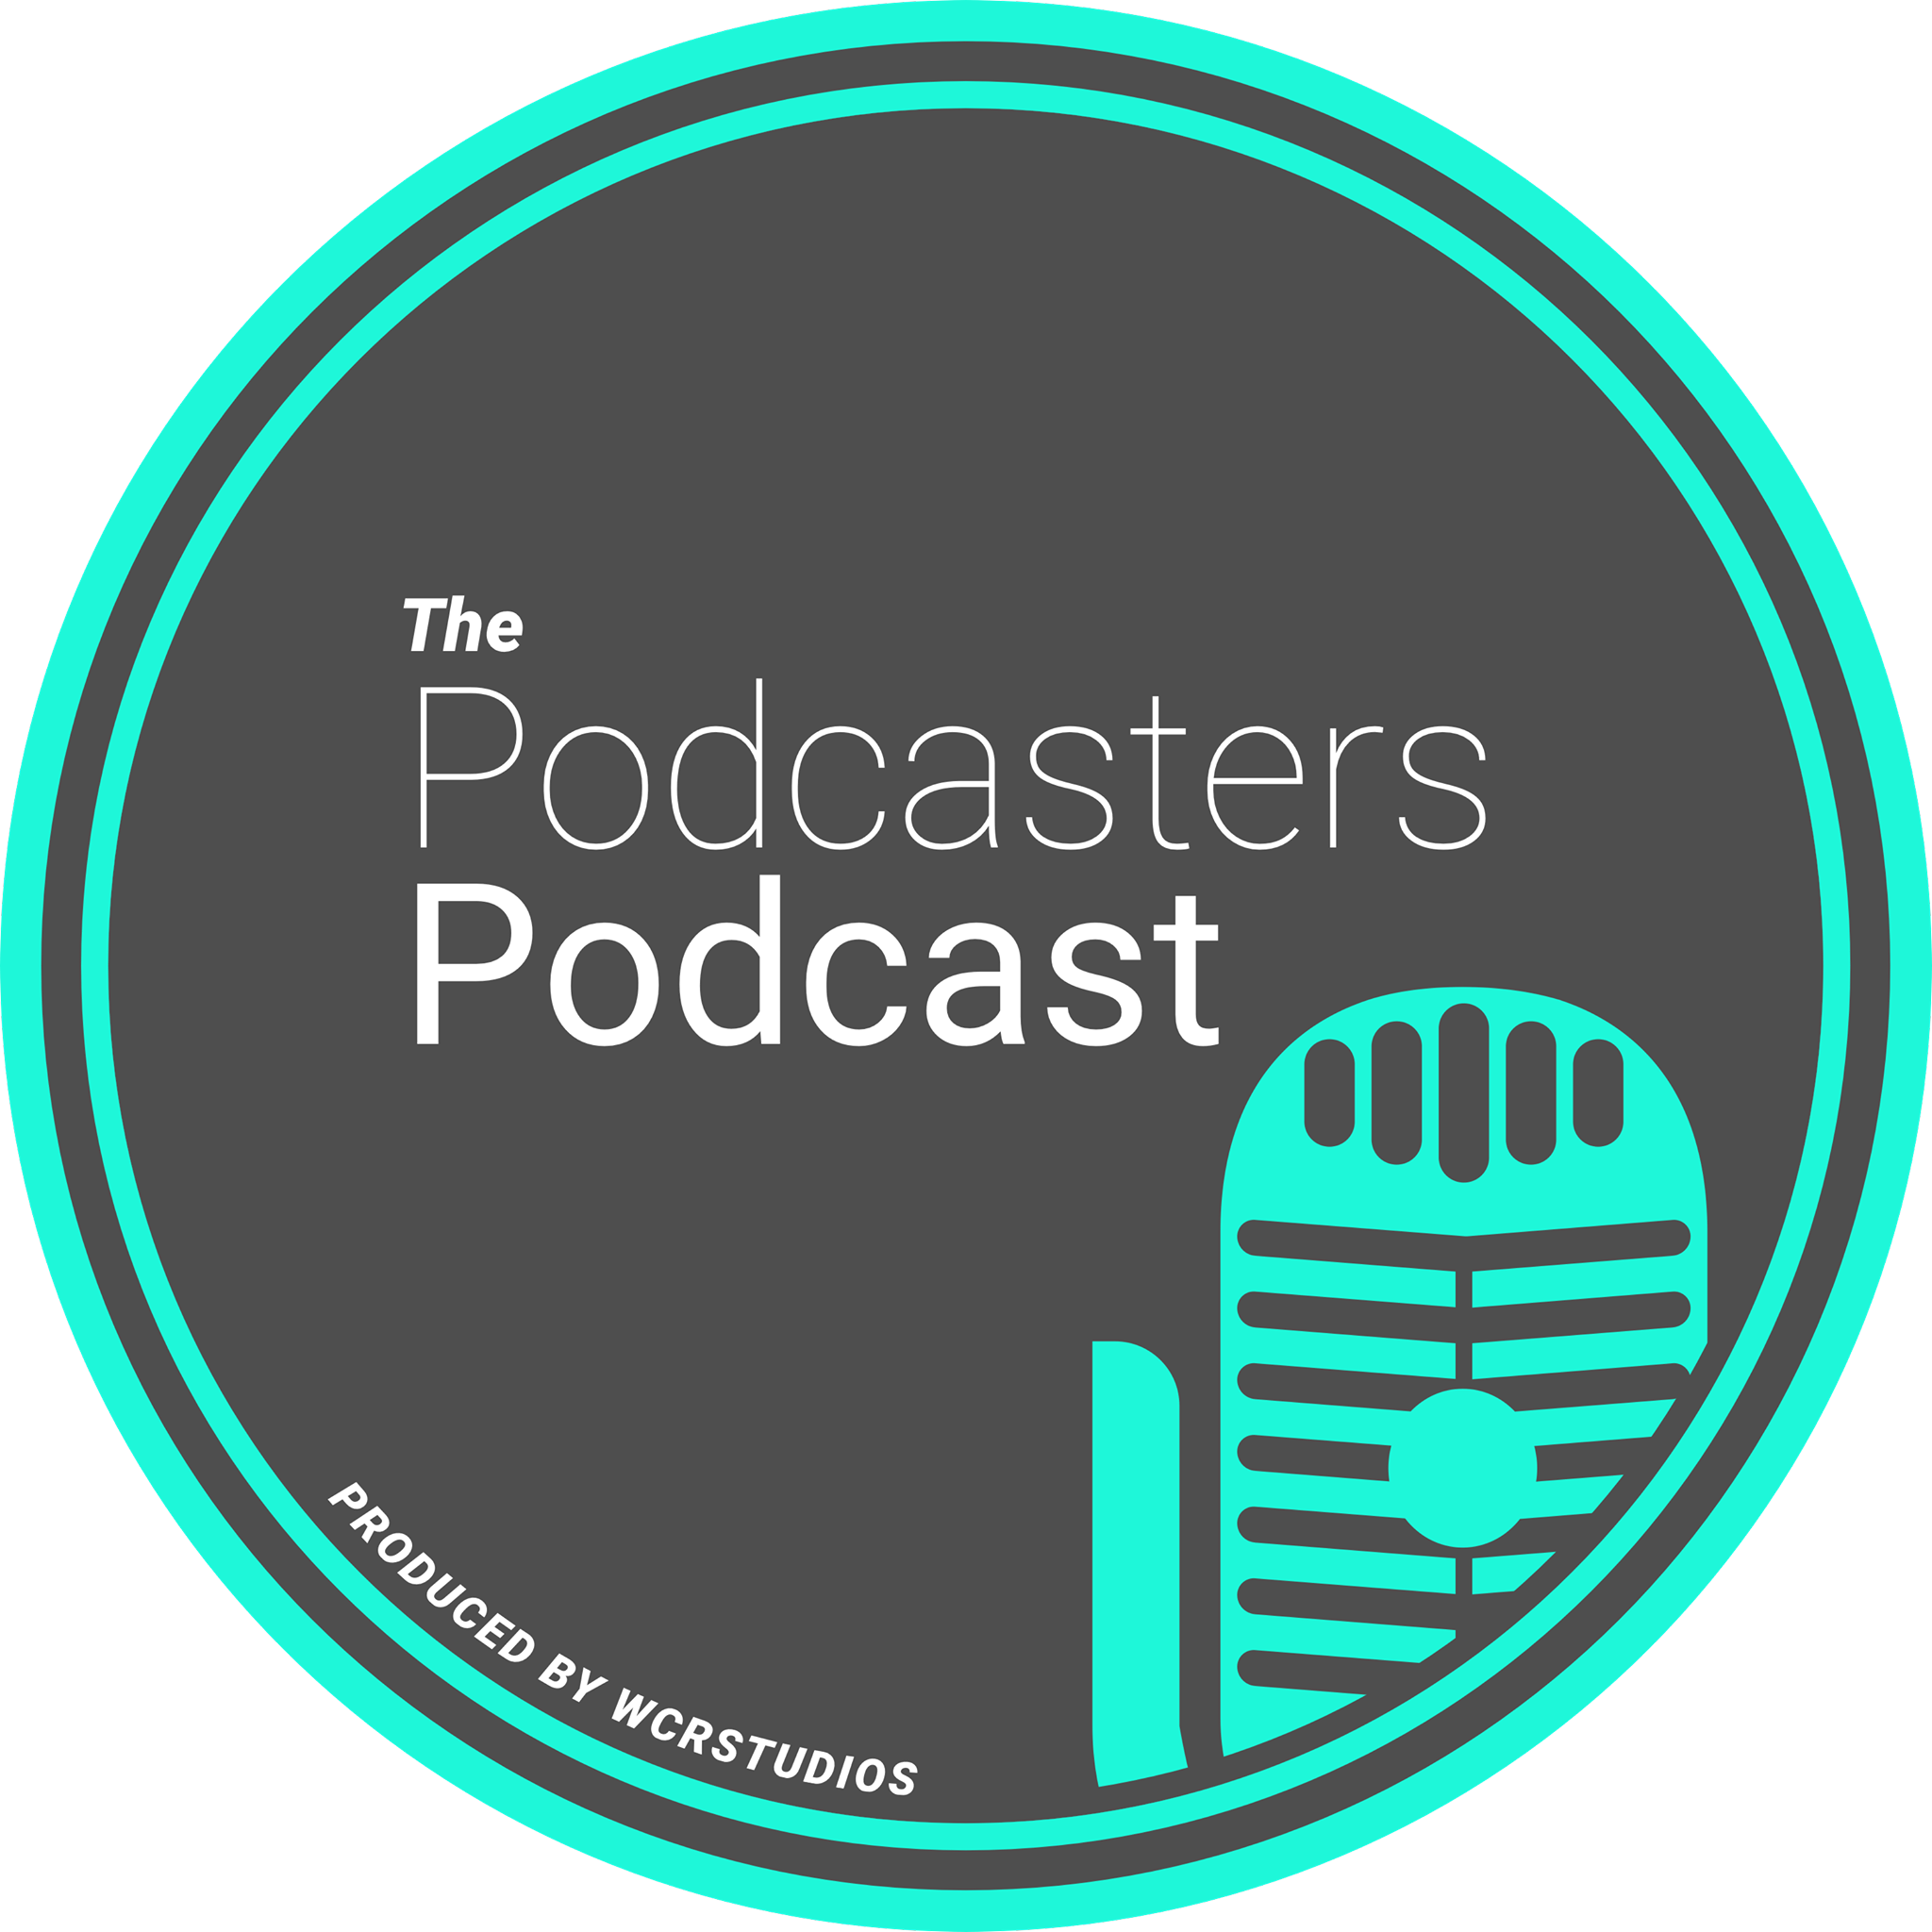 The Podcasters Podcast